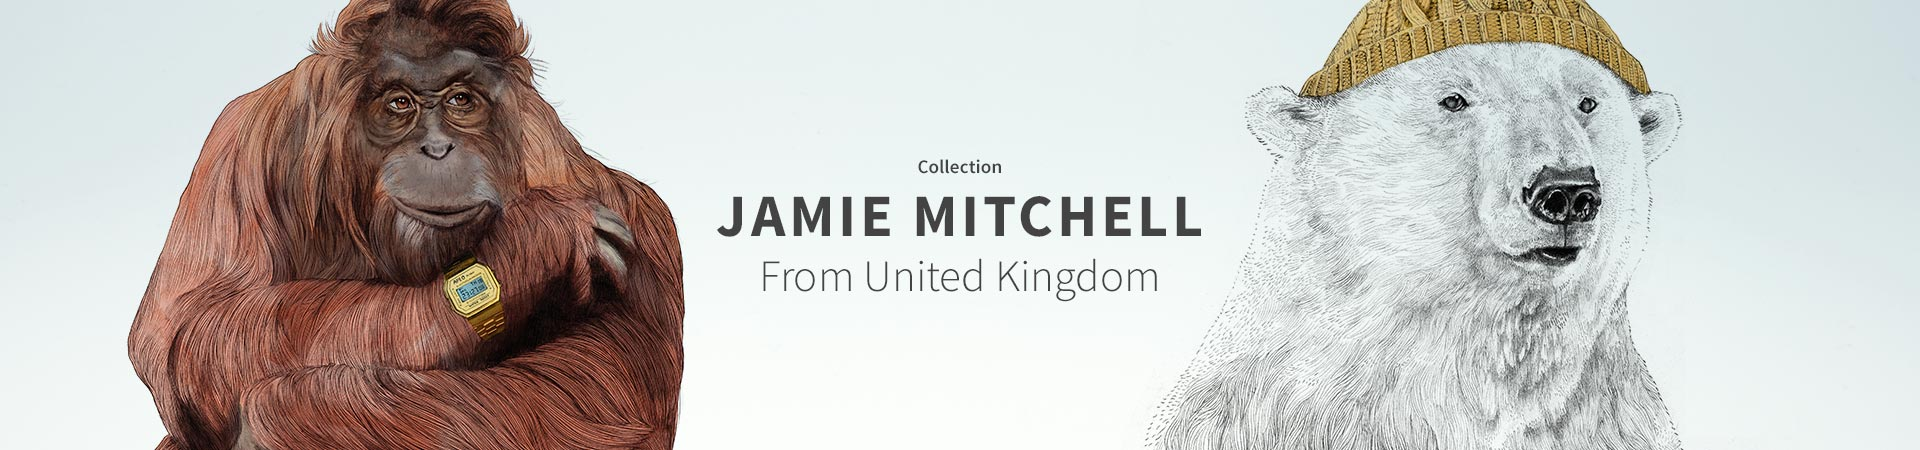 Collection Jamie Mitchell